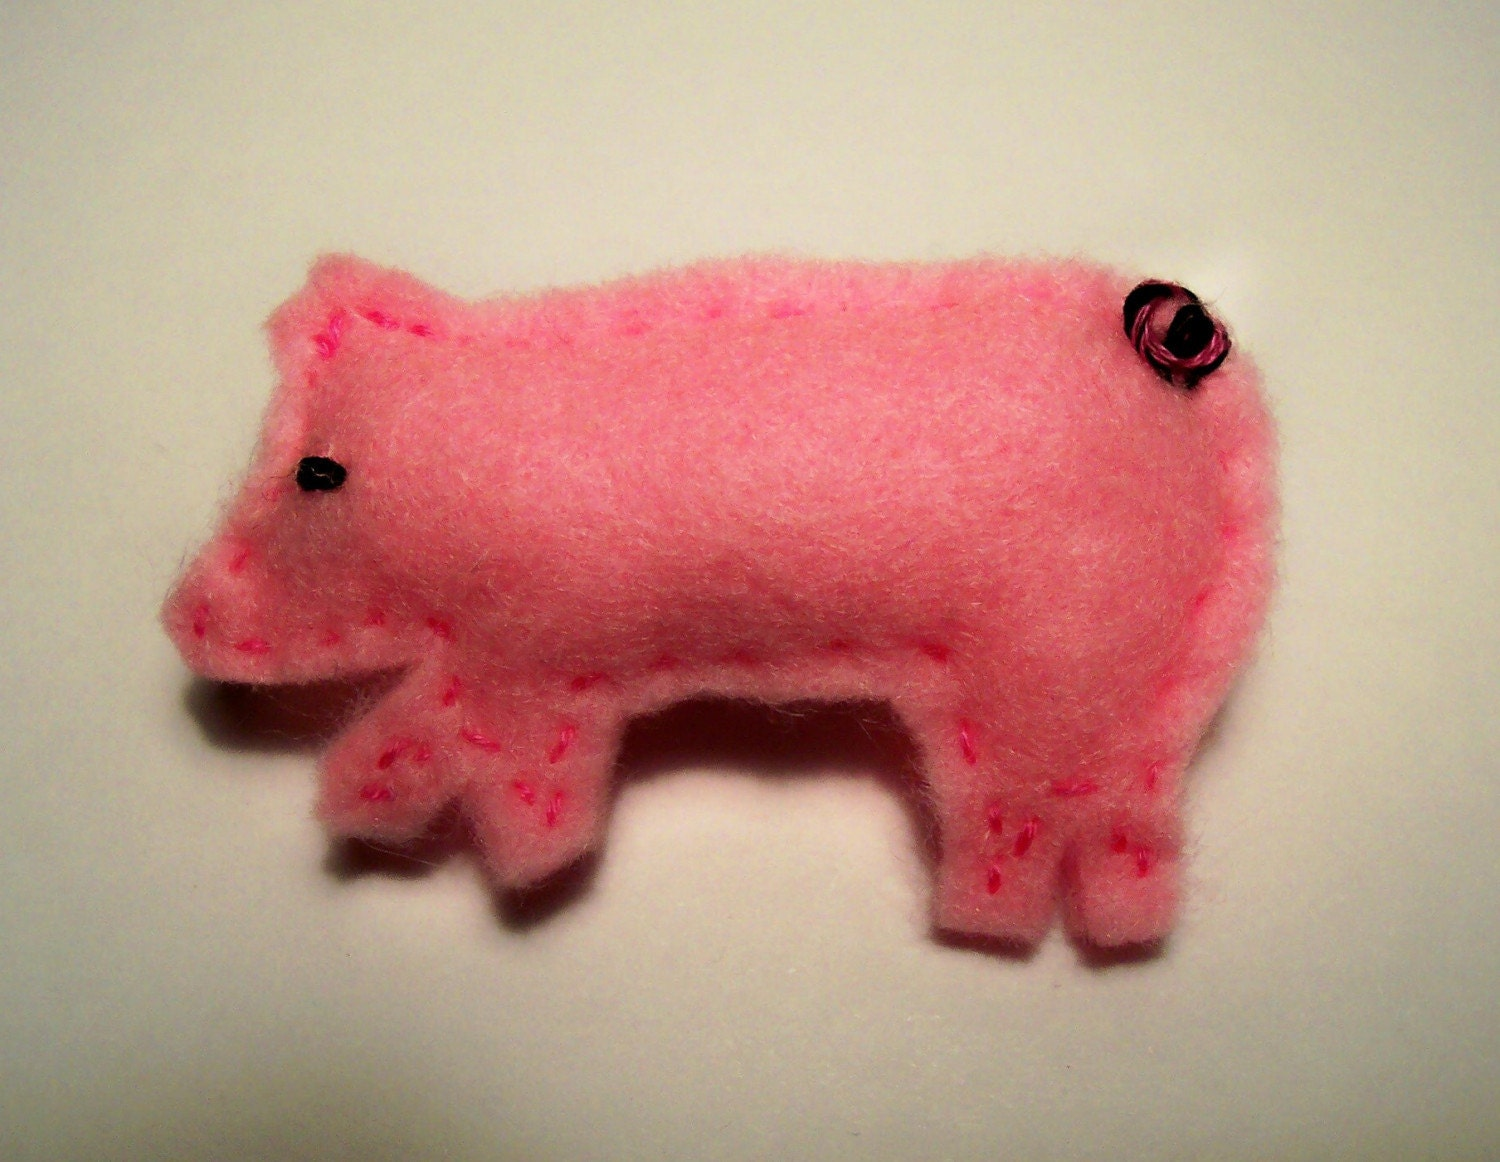 This little Piggy is NOT going to market................ midnightrabbits